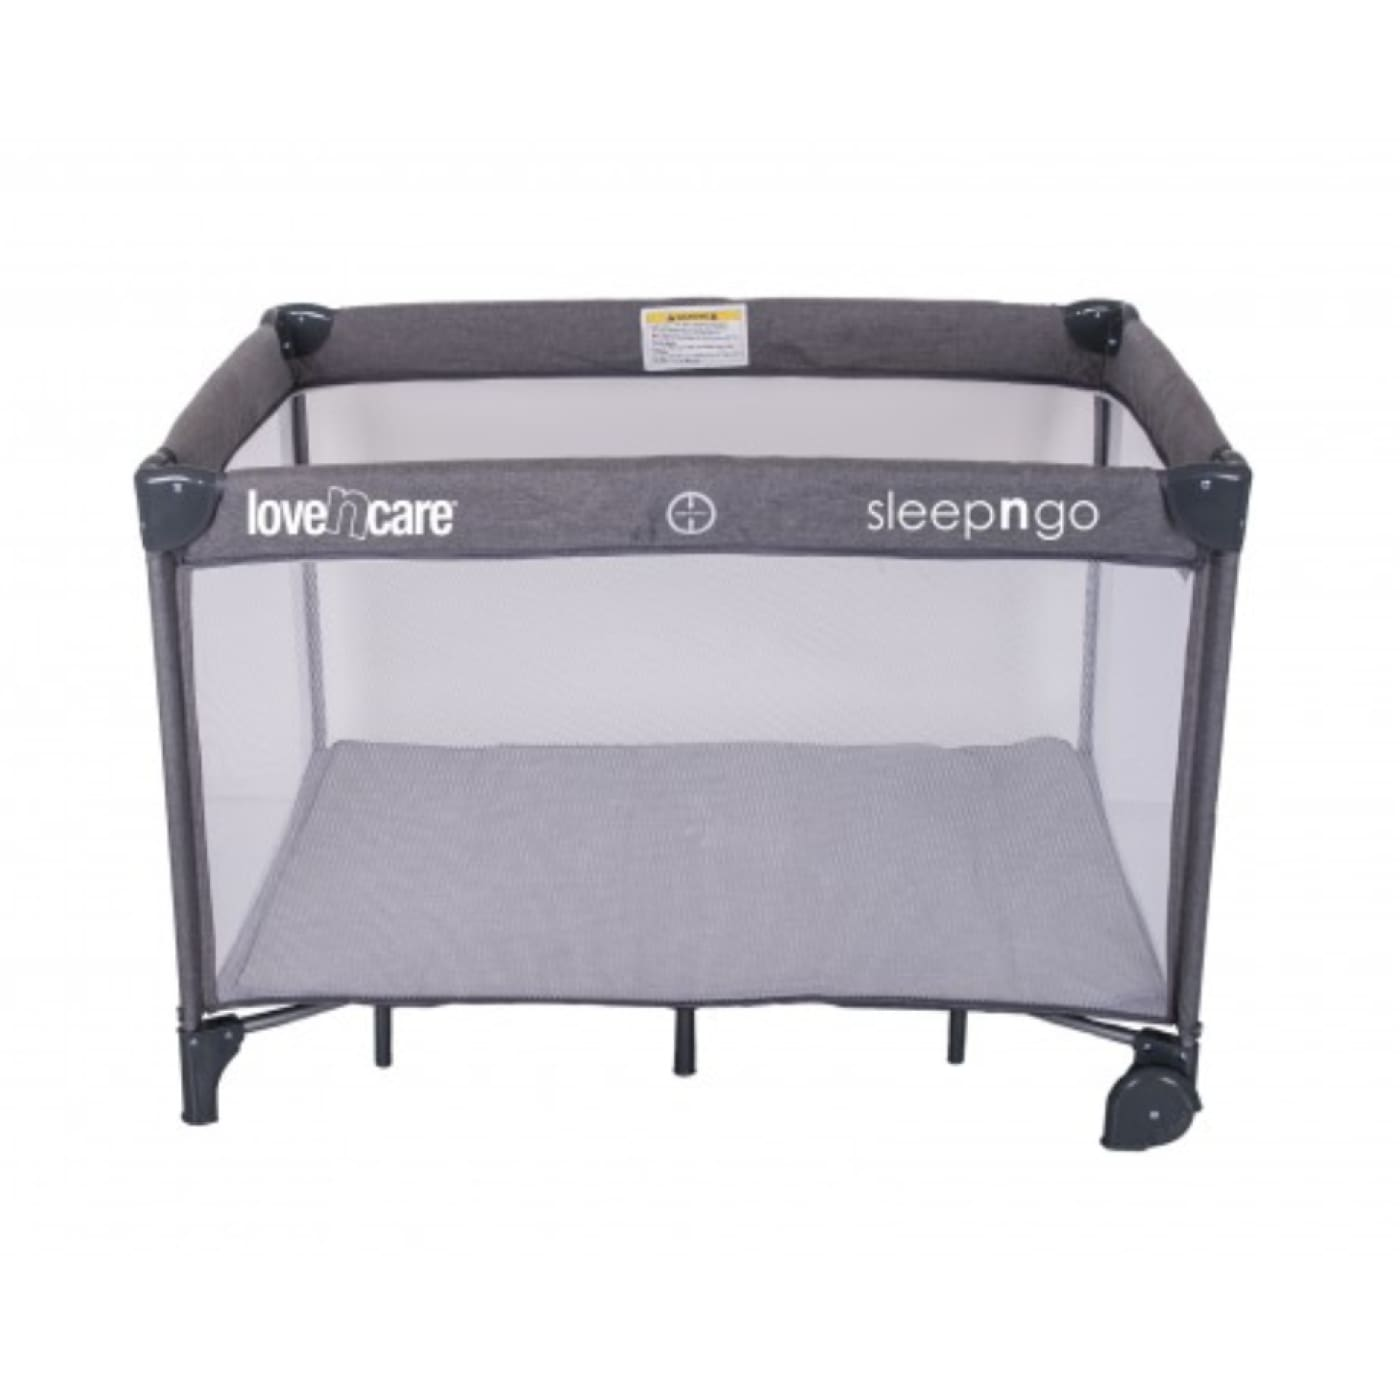 Love N Care 3-in-1 Sleep N Go Travel Cot - Grey - ON THE GO - PORTACOTS/ACCESSORIES